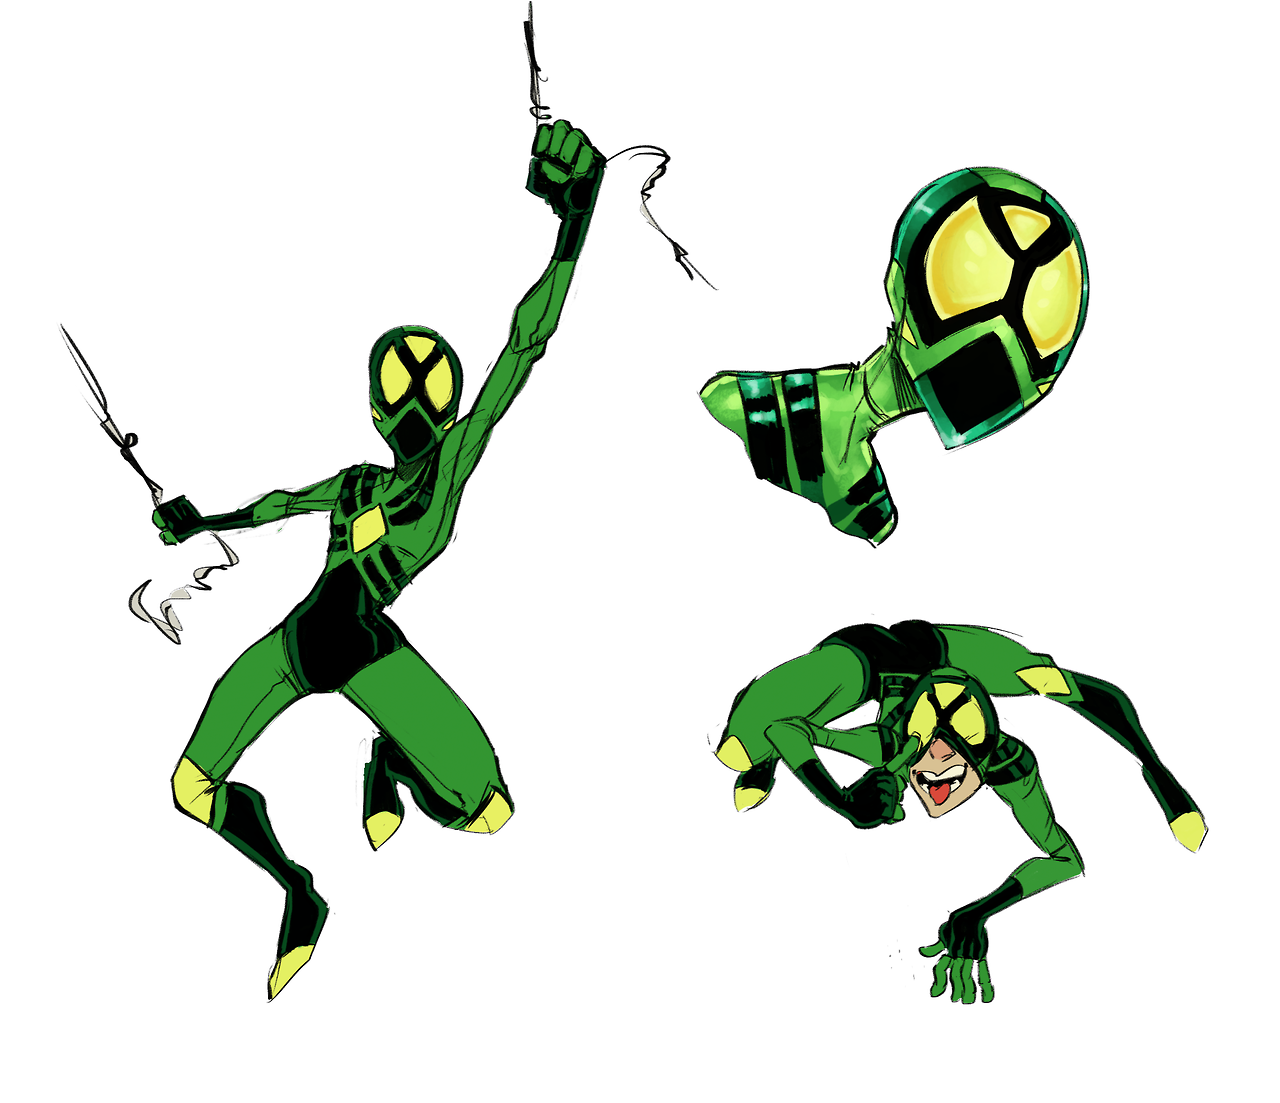 More Spider-dot doodles! And a… mysterious suit that came out of nowhere…